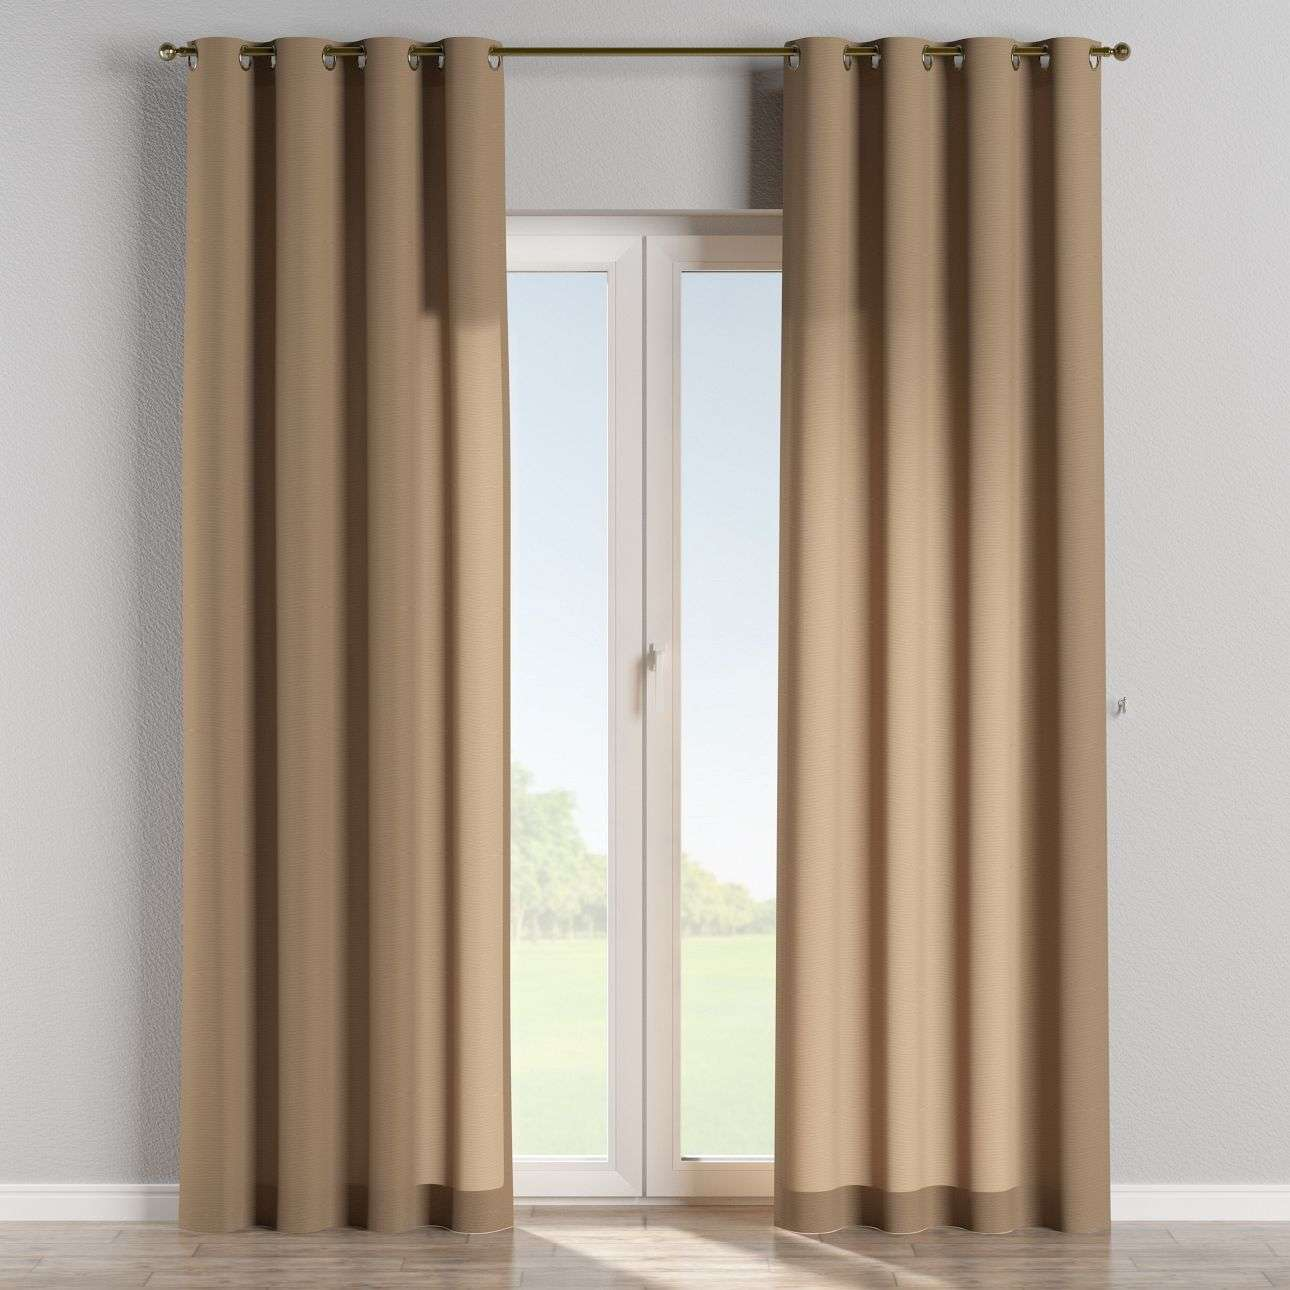 Eyelet curtains 130 × 260 cm (51 × 102 inch) in collection Quadro, fabric: 136-09